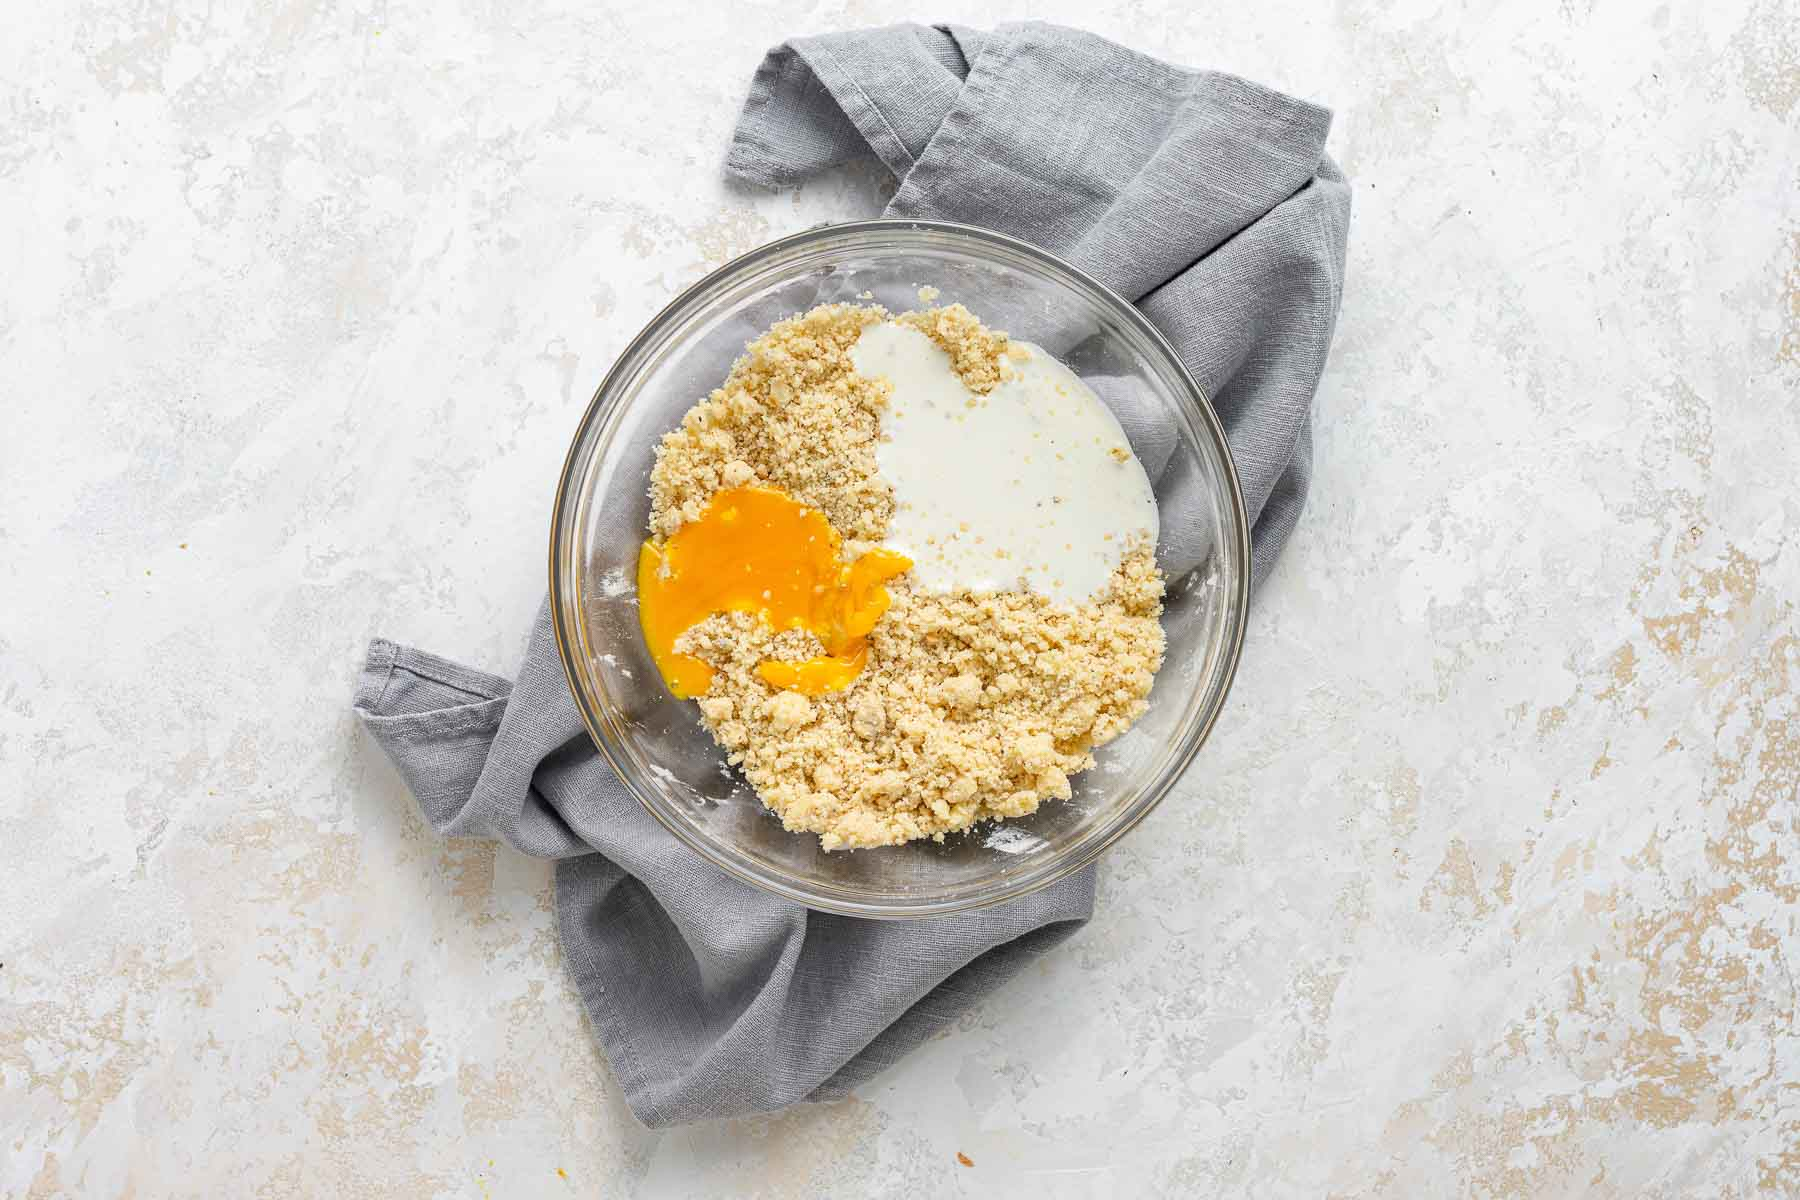 Egg yolk and cream on top of dough in bowl.